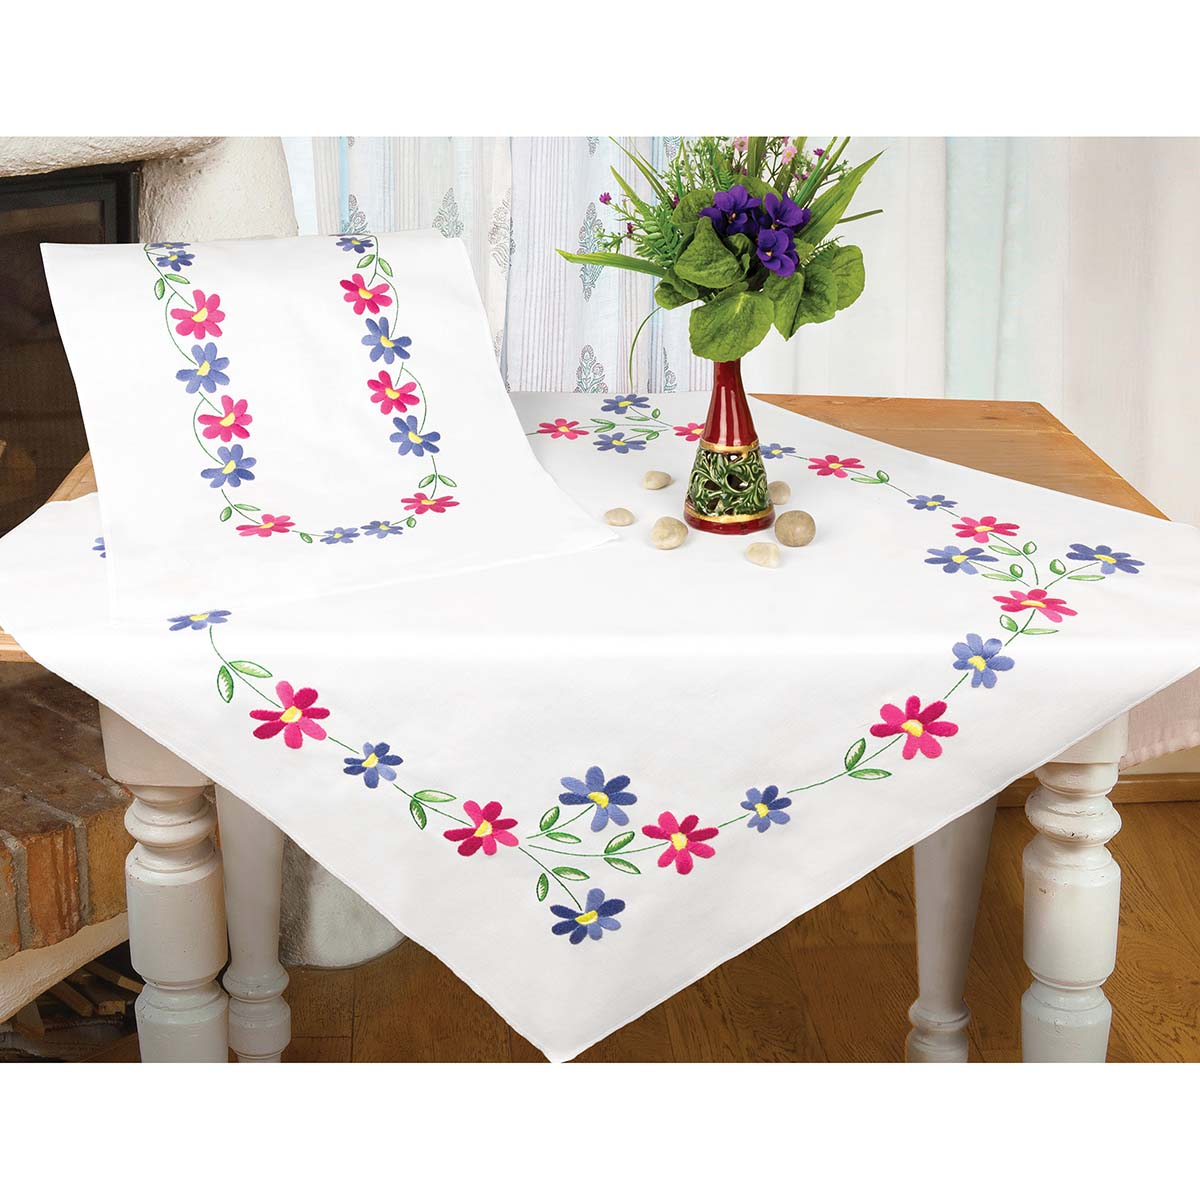 Herrschners® Spring Garland Table Topper Stamped Embroidery Kit